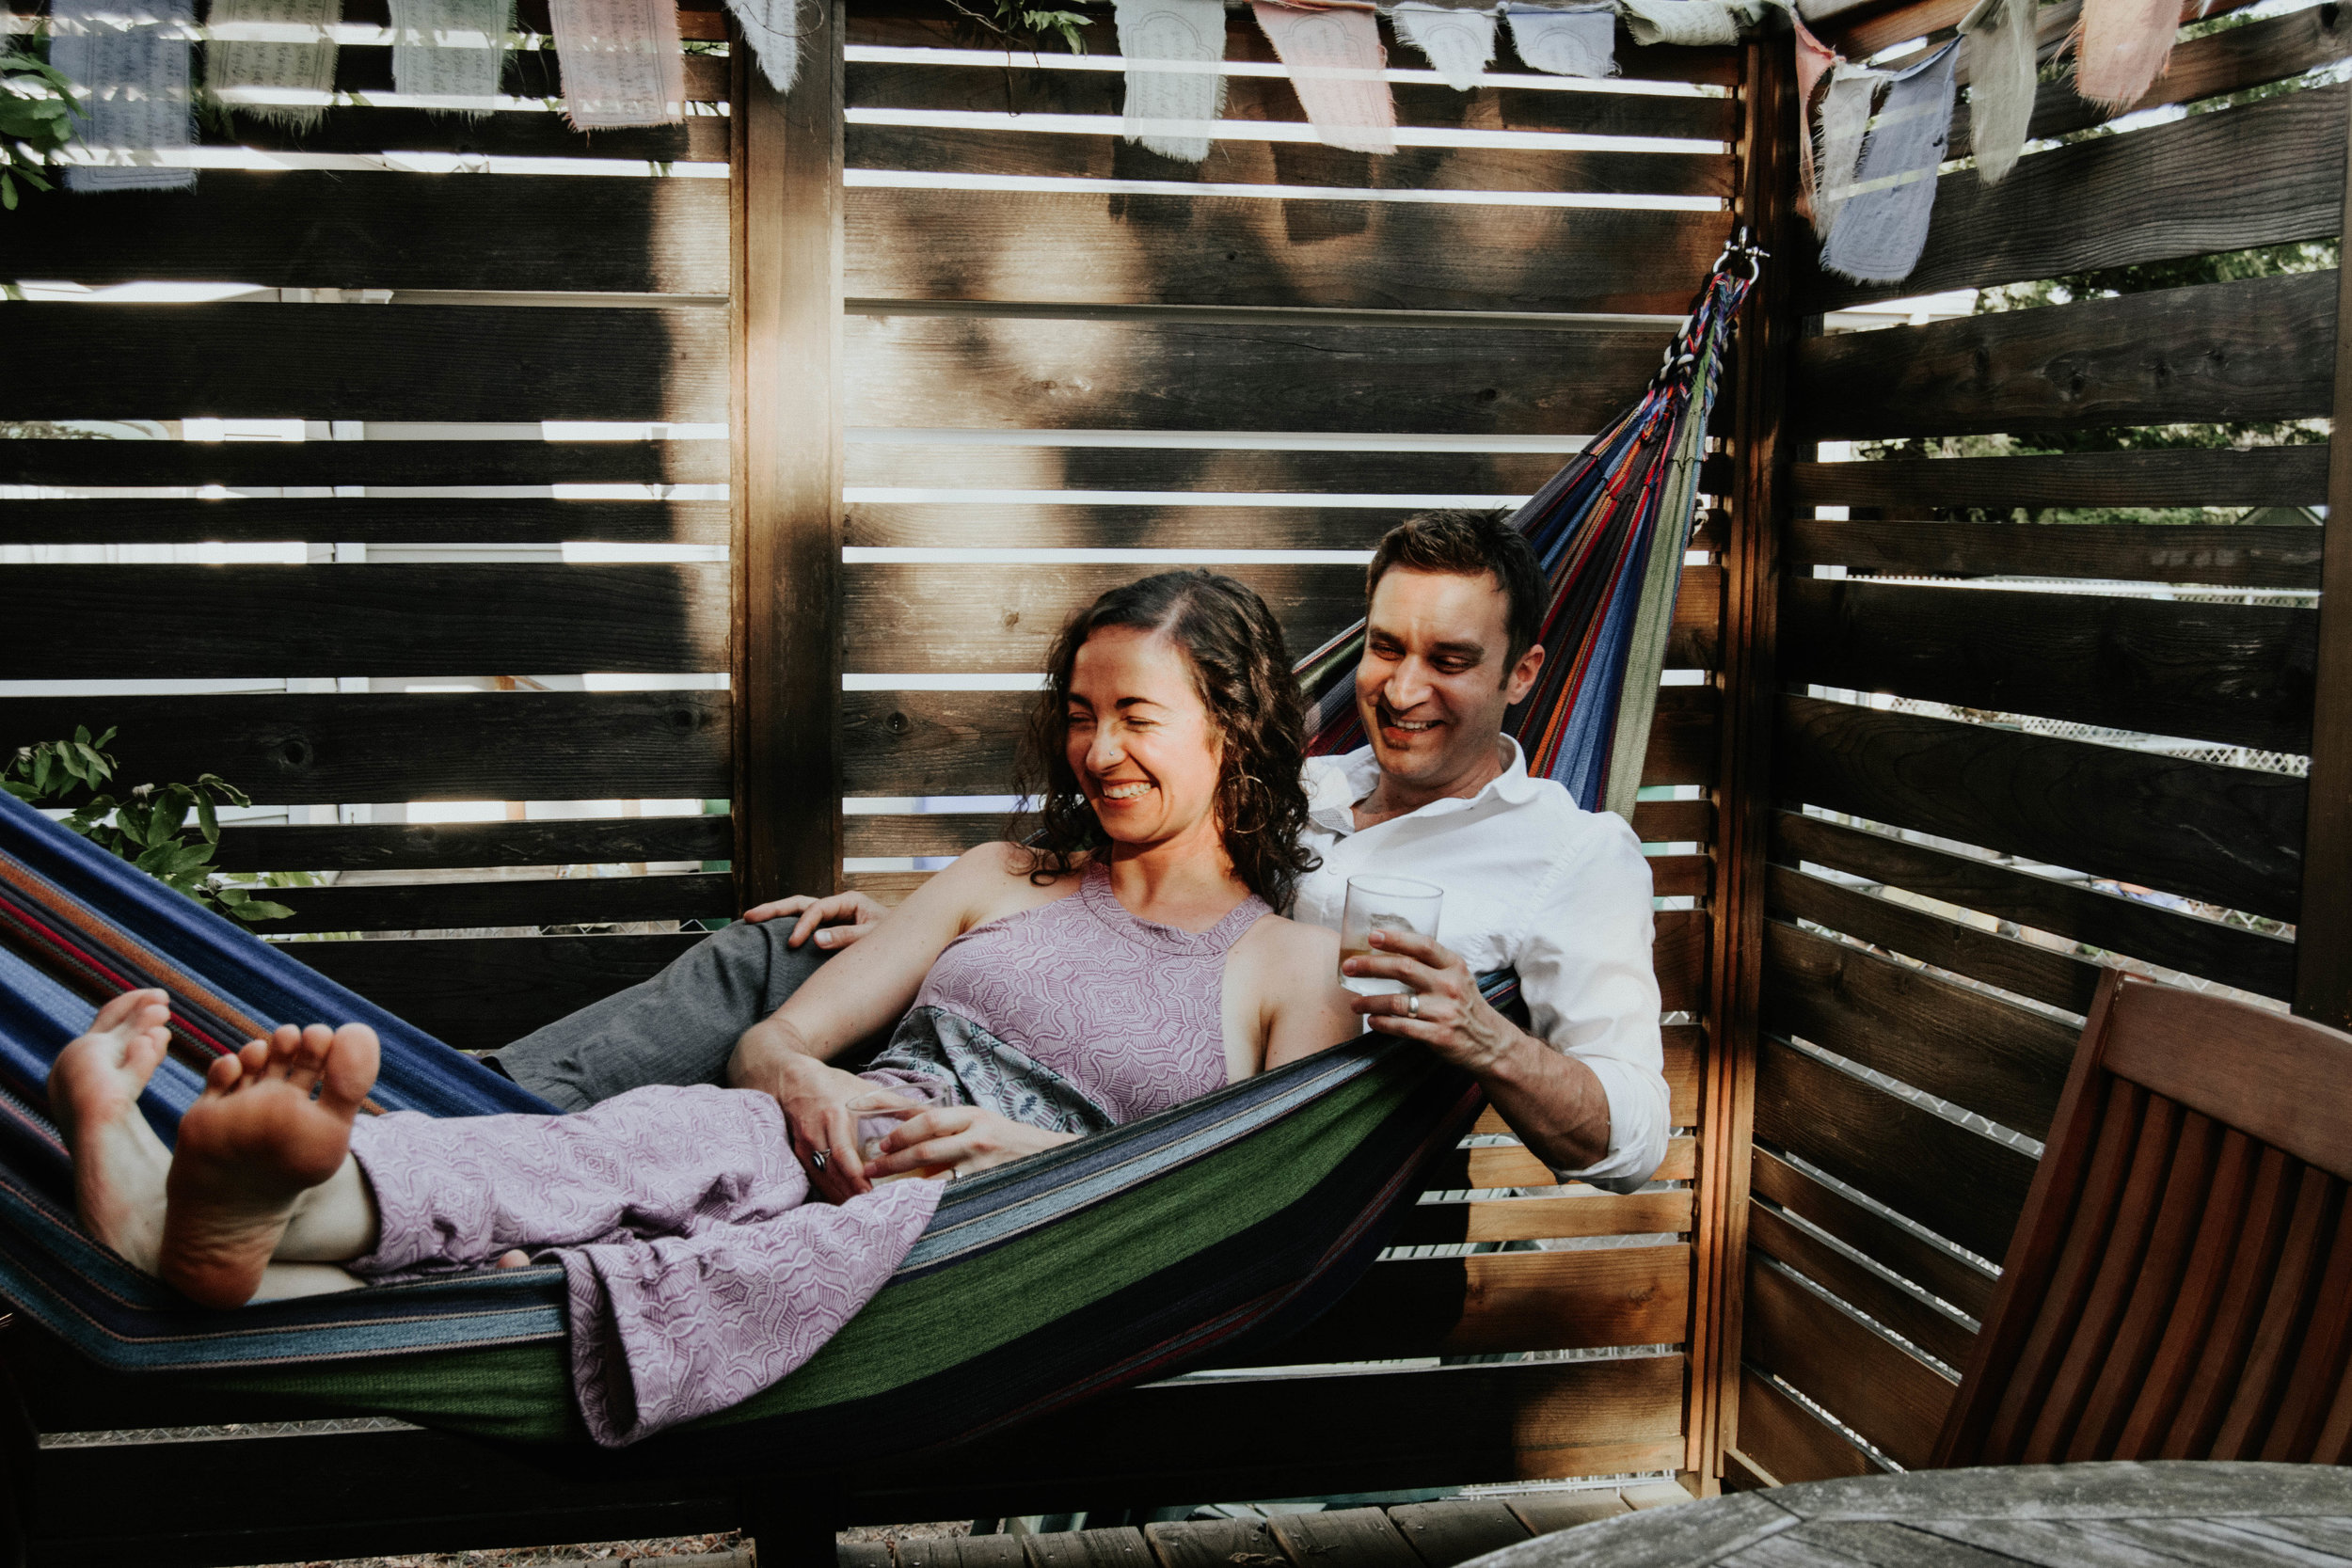 Dara+Ben Portland, OR Engagement Session | Heather Woolery 2017